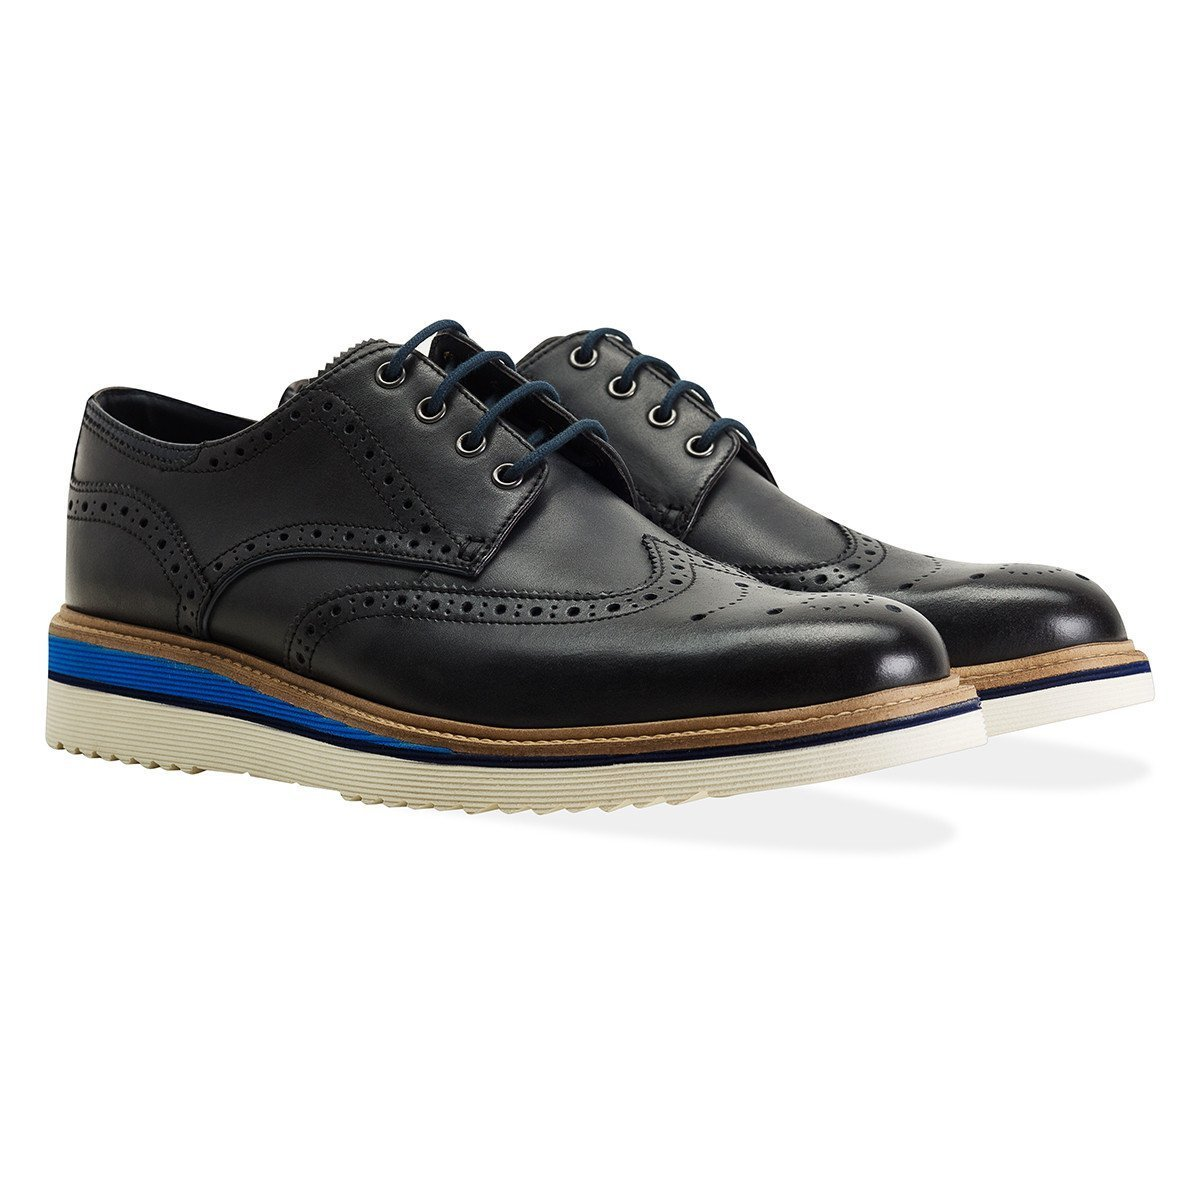 Image of NEWTON NAVY | FREE SHIPPING